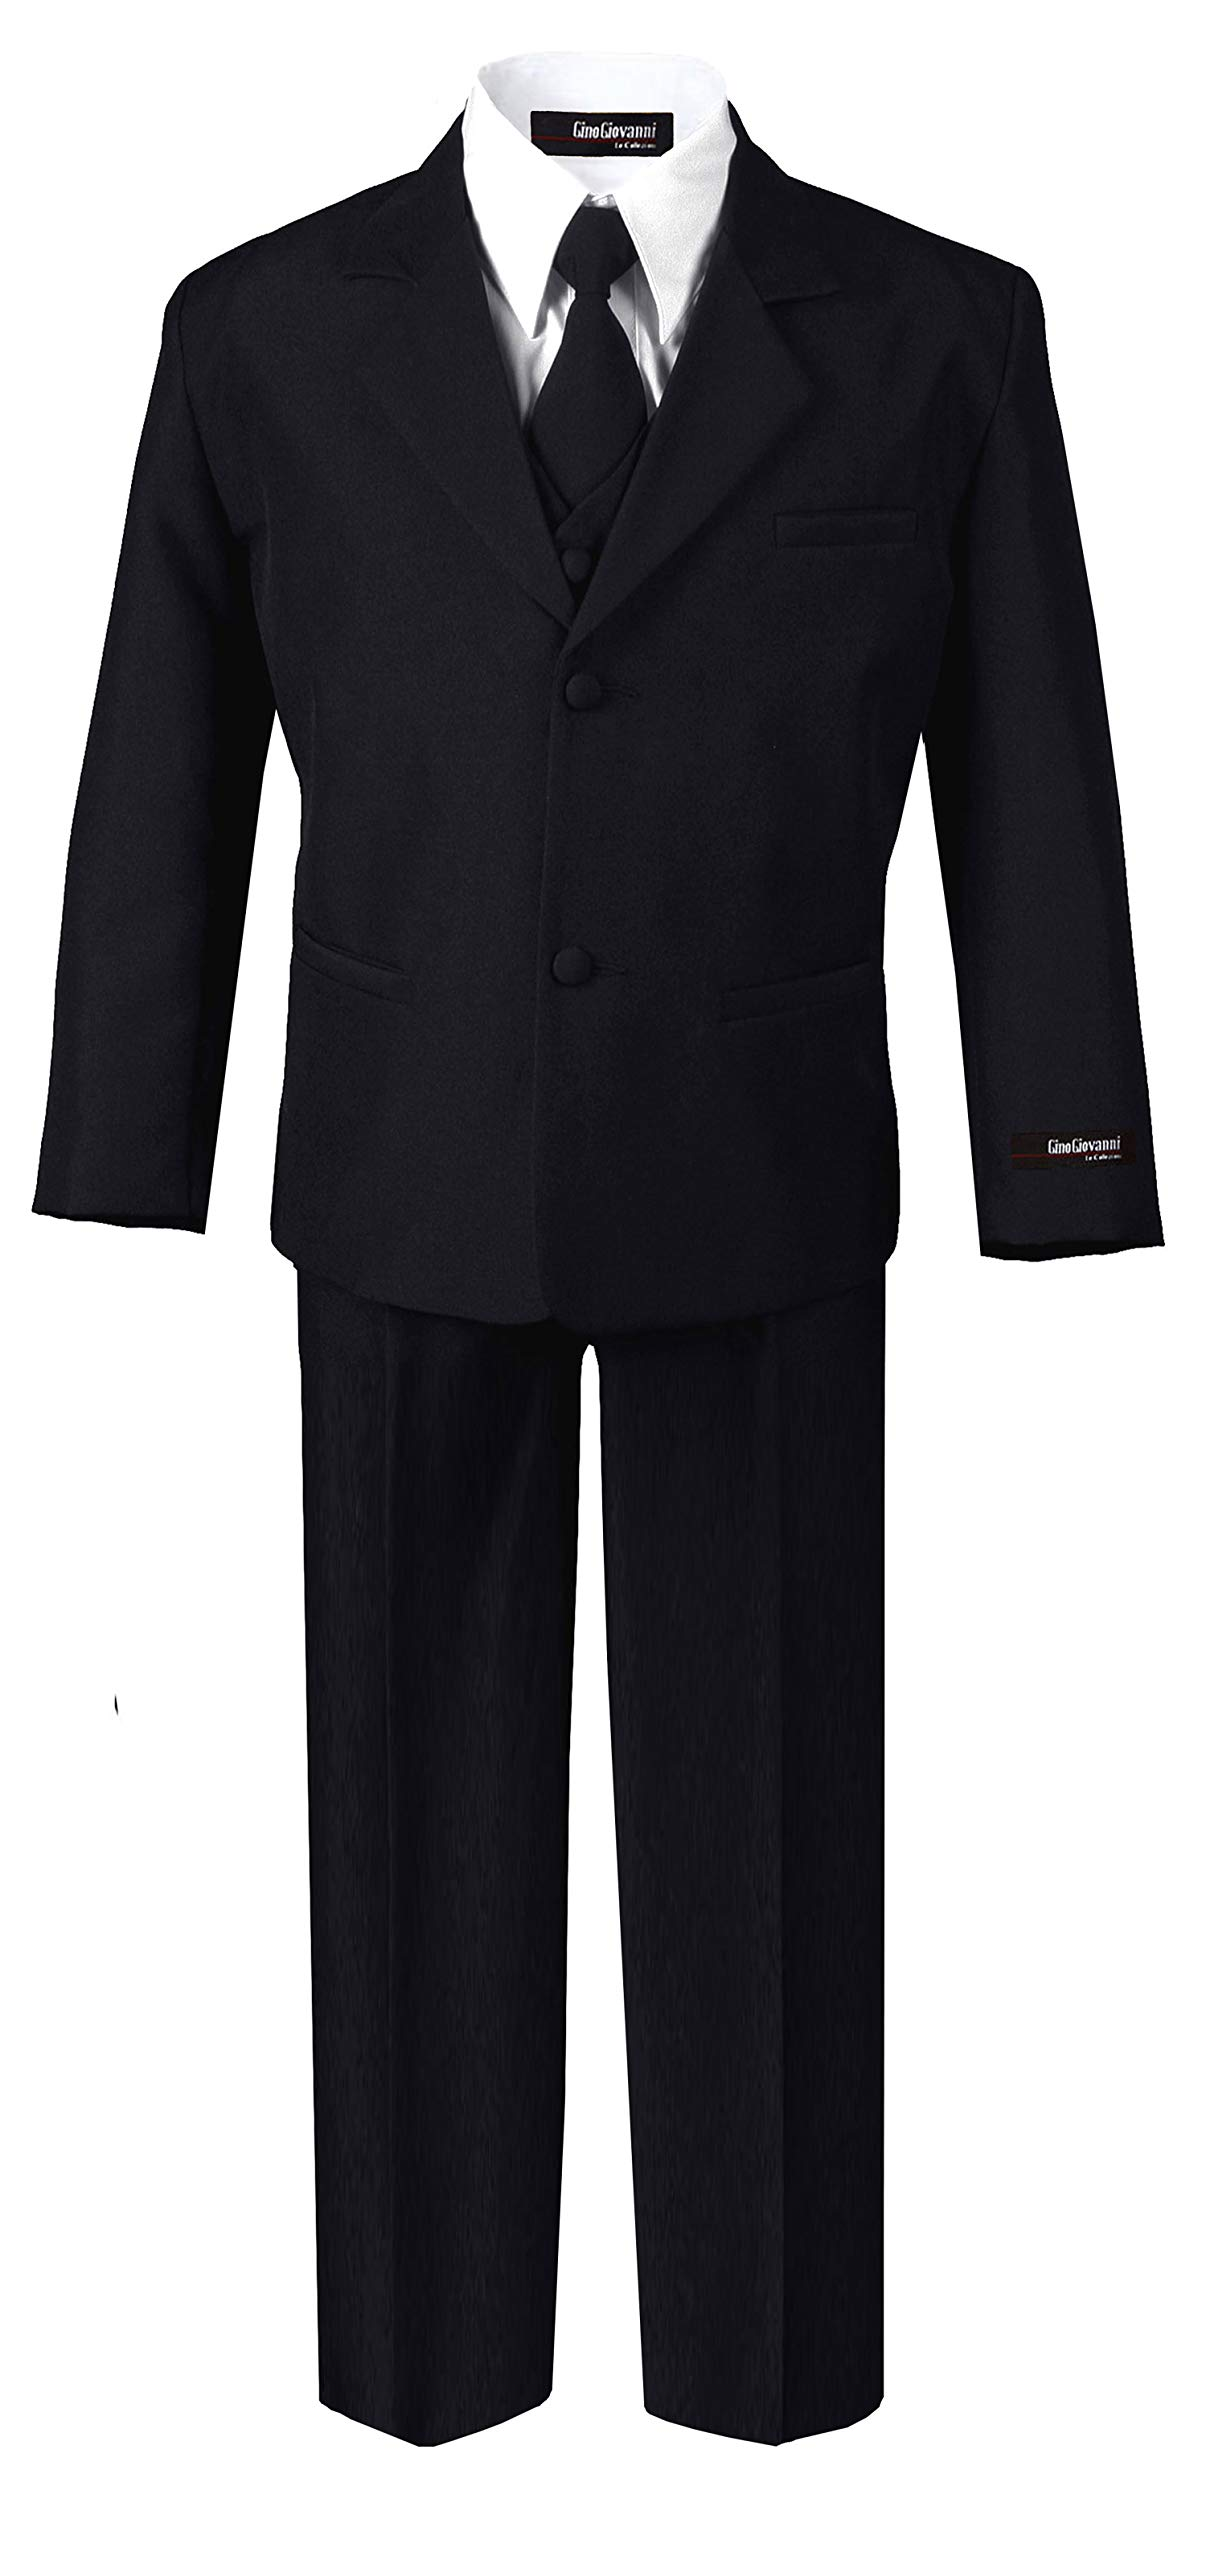 US Fairytailes Formal Boy Black Suit from Baby to Teen (20)